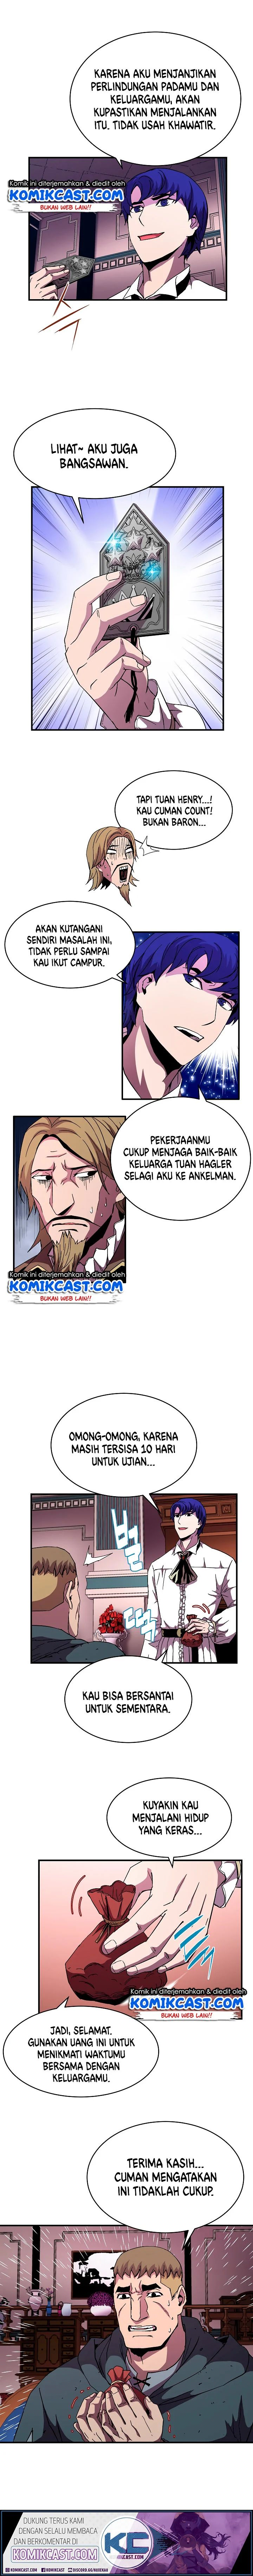 8 Circle Wizard's Reincarnation Chapter 45